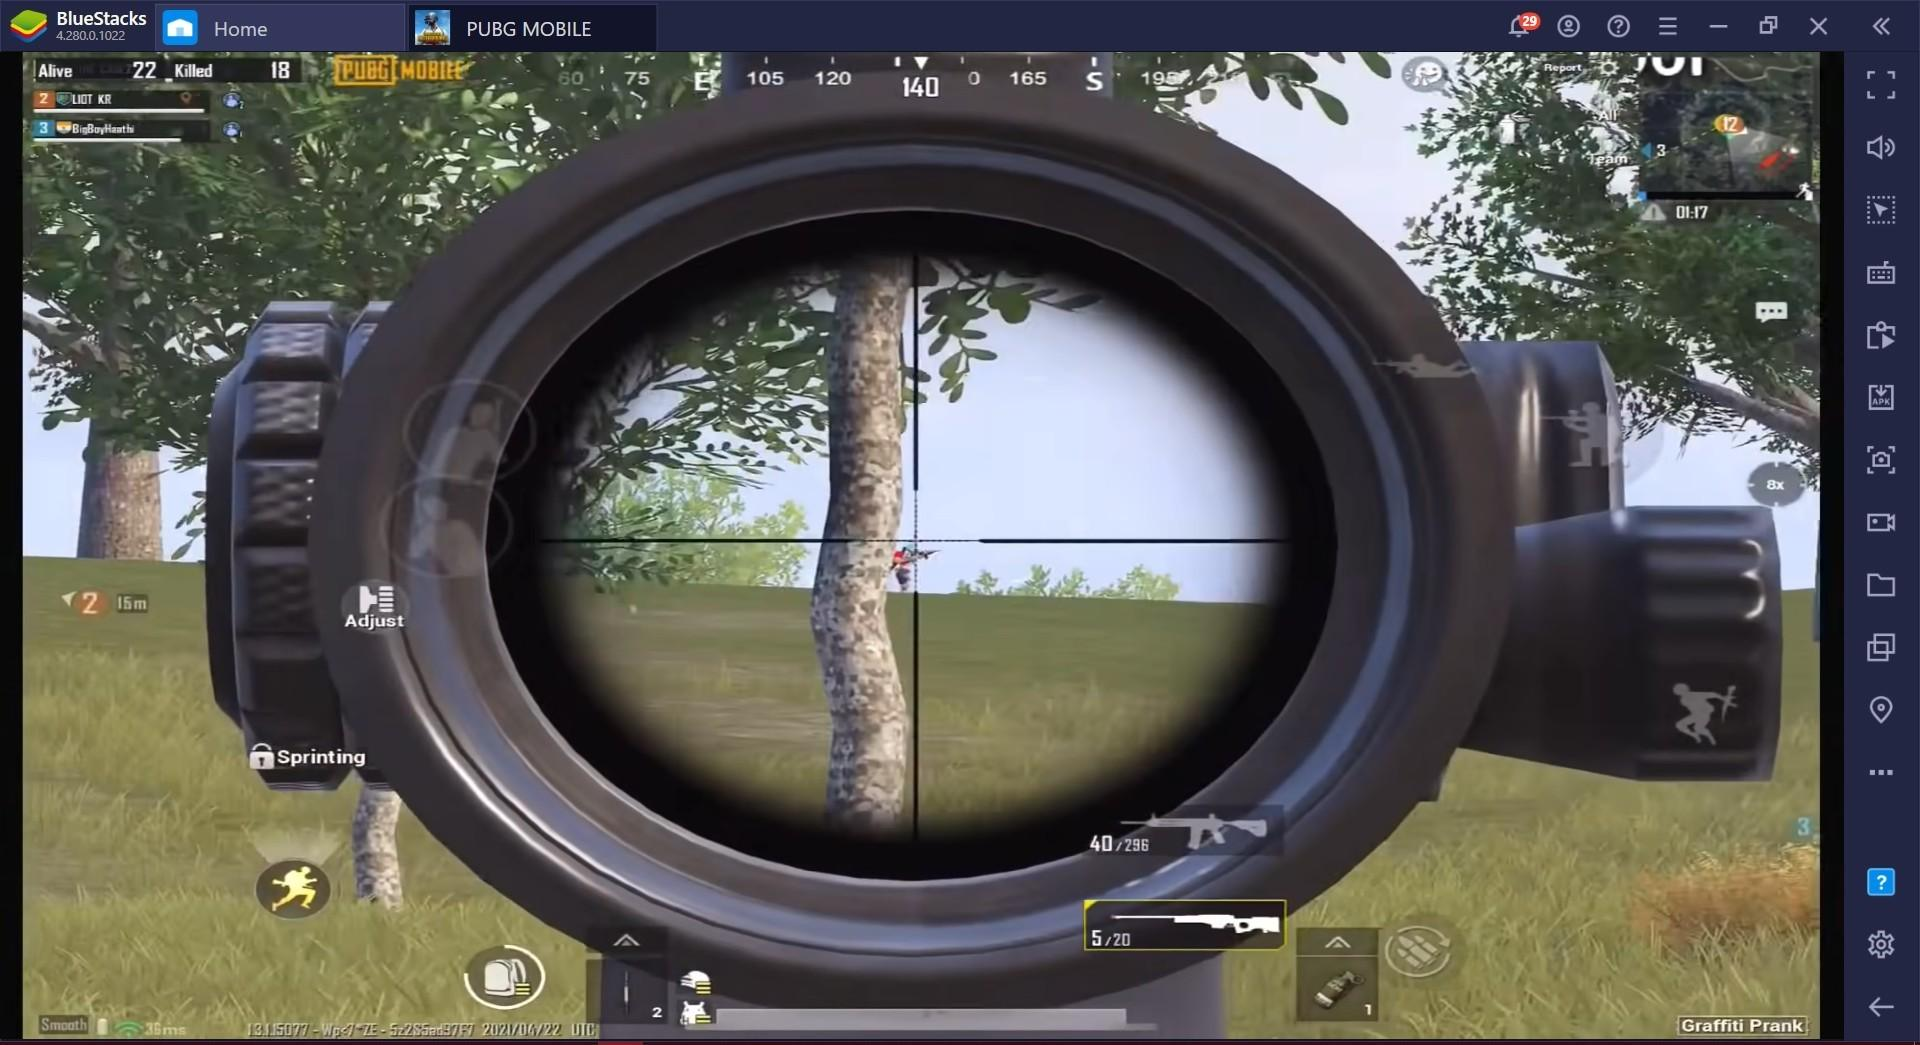 Dominate Everywhere: BlueStacks Guide to Terrains in PUBG Mobile